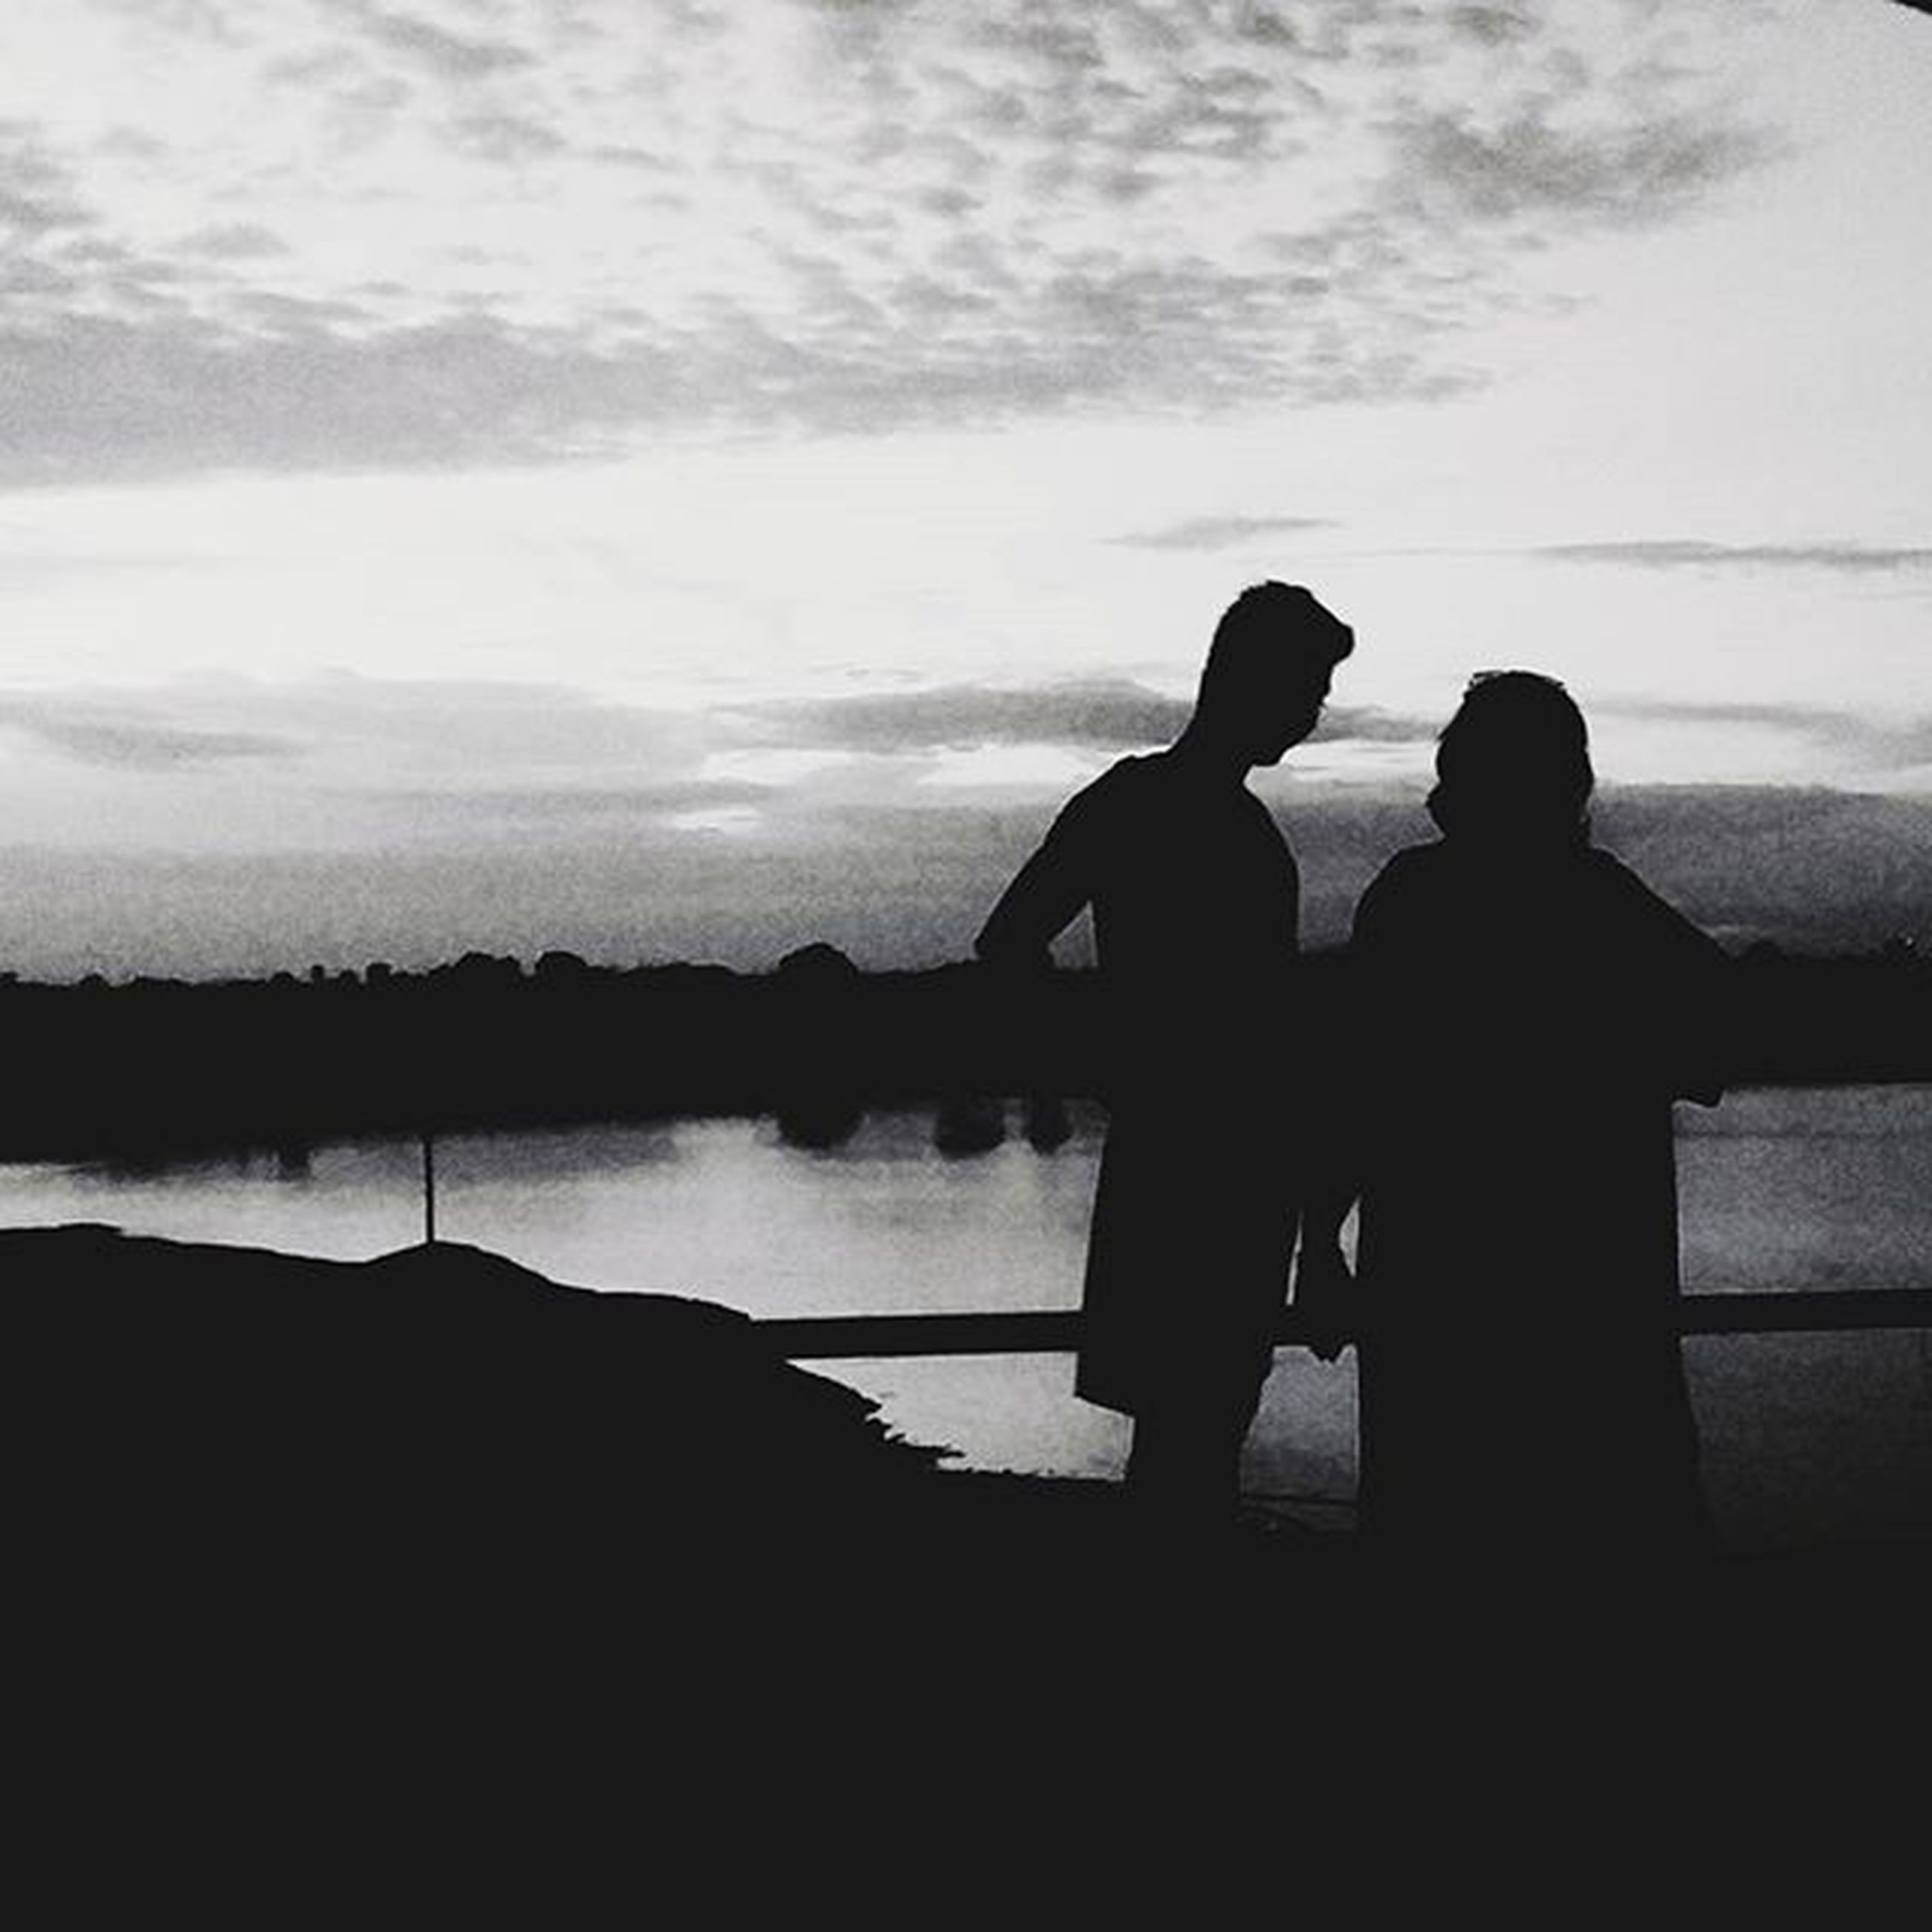 silhouette, men, water, togetherness, lifestyles, sky, leisure activity, standing, person, sunset, bonding, outline, full length, cloud - sky, nature, sea, love